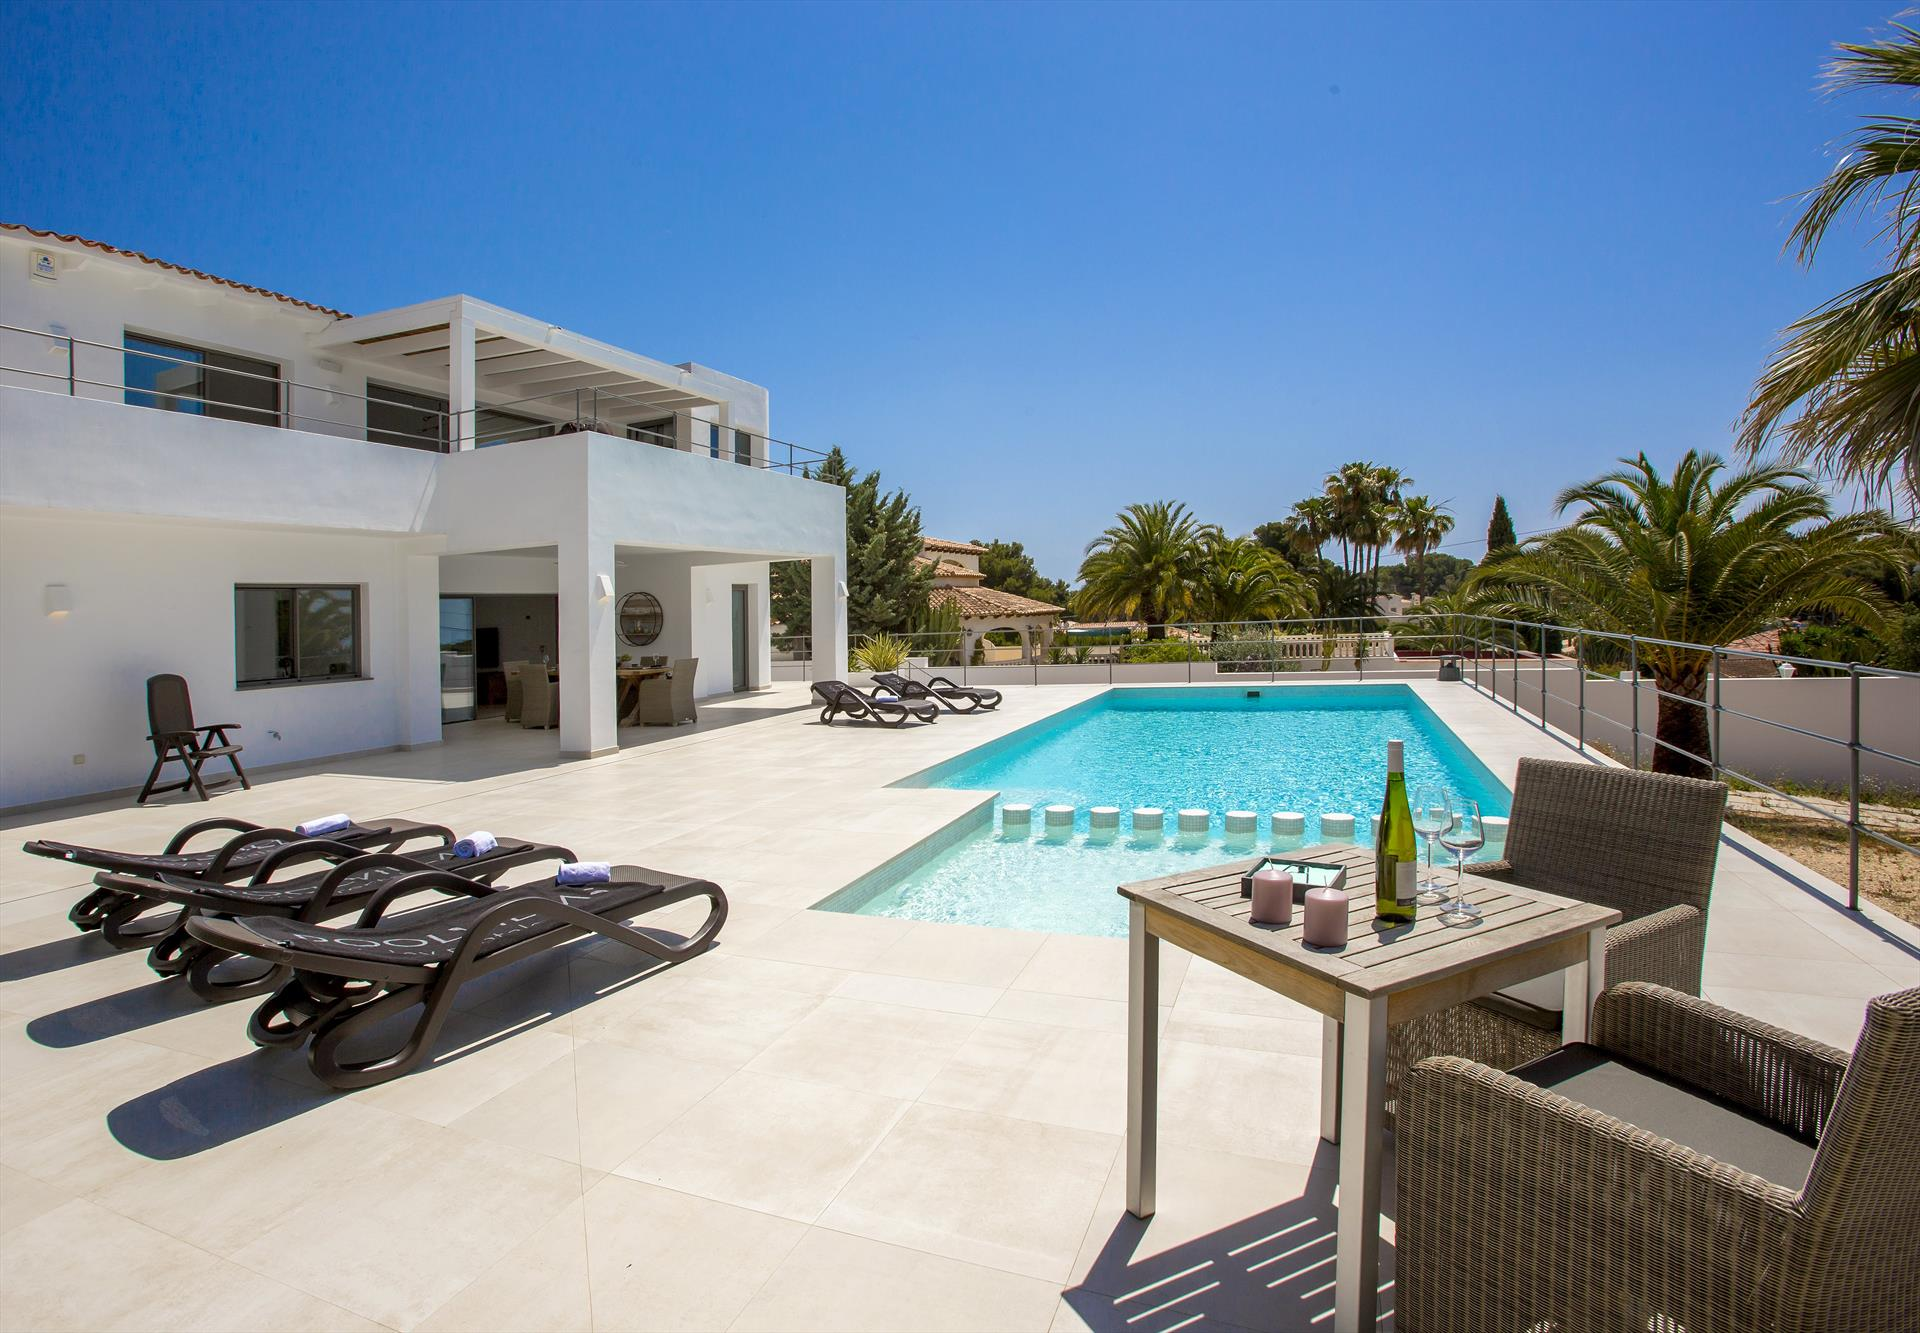 La Famisol, Luxury villa in Moraira, on the Costa Blanca, Spain  with private pool for 6 persons.....